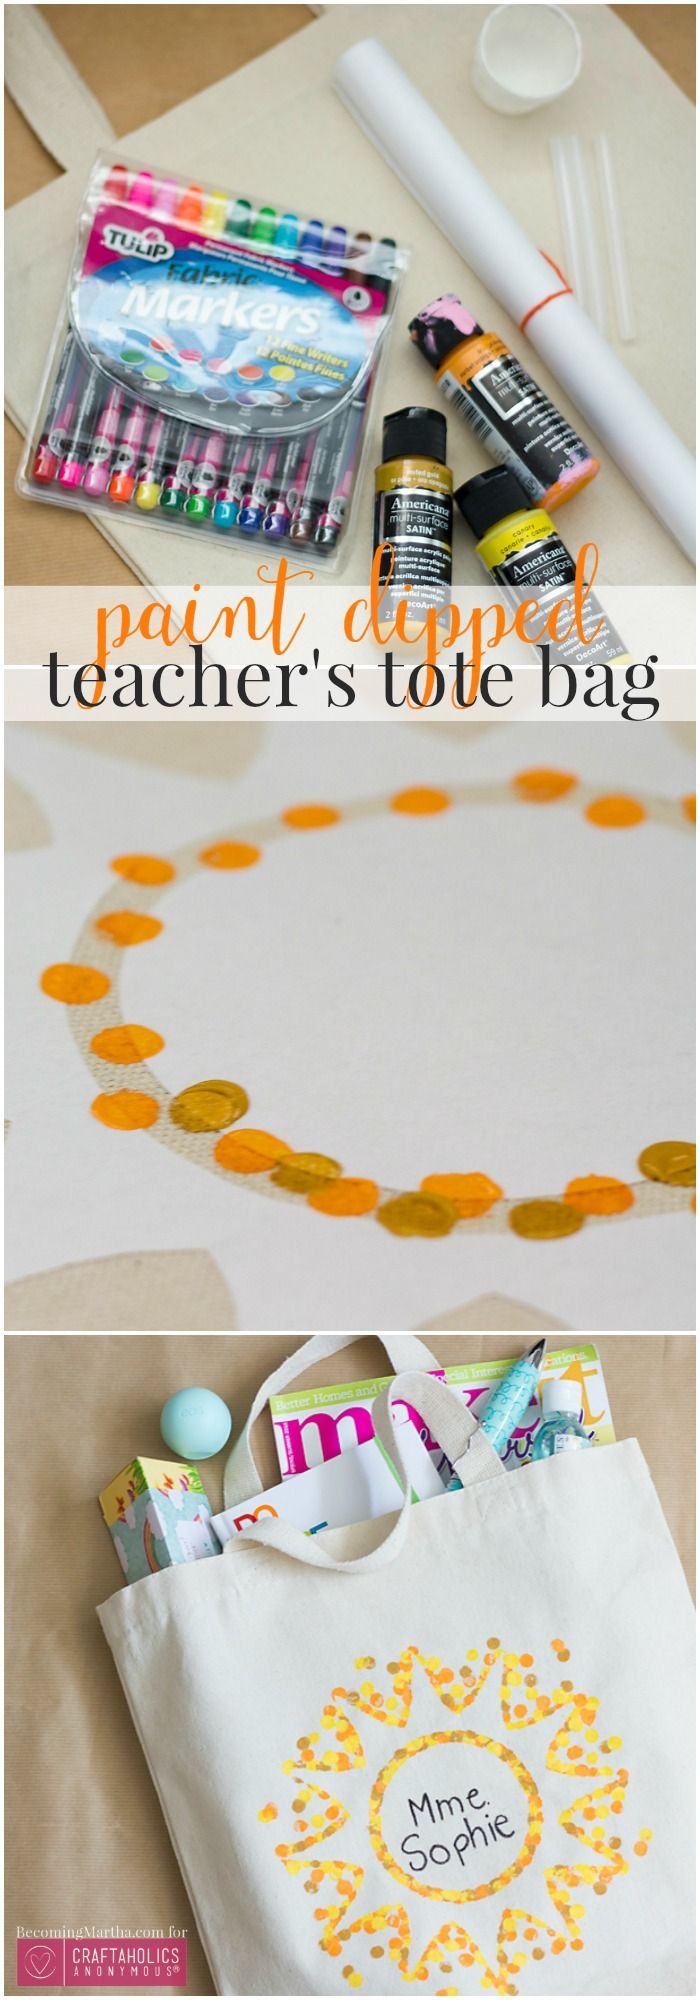 DIY Gifts Ideas : Craftaholics Anonymous® | End of the school year ...